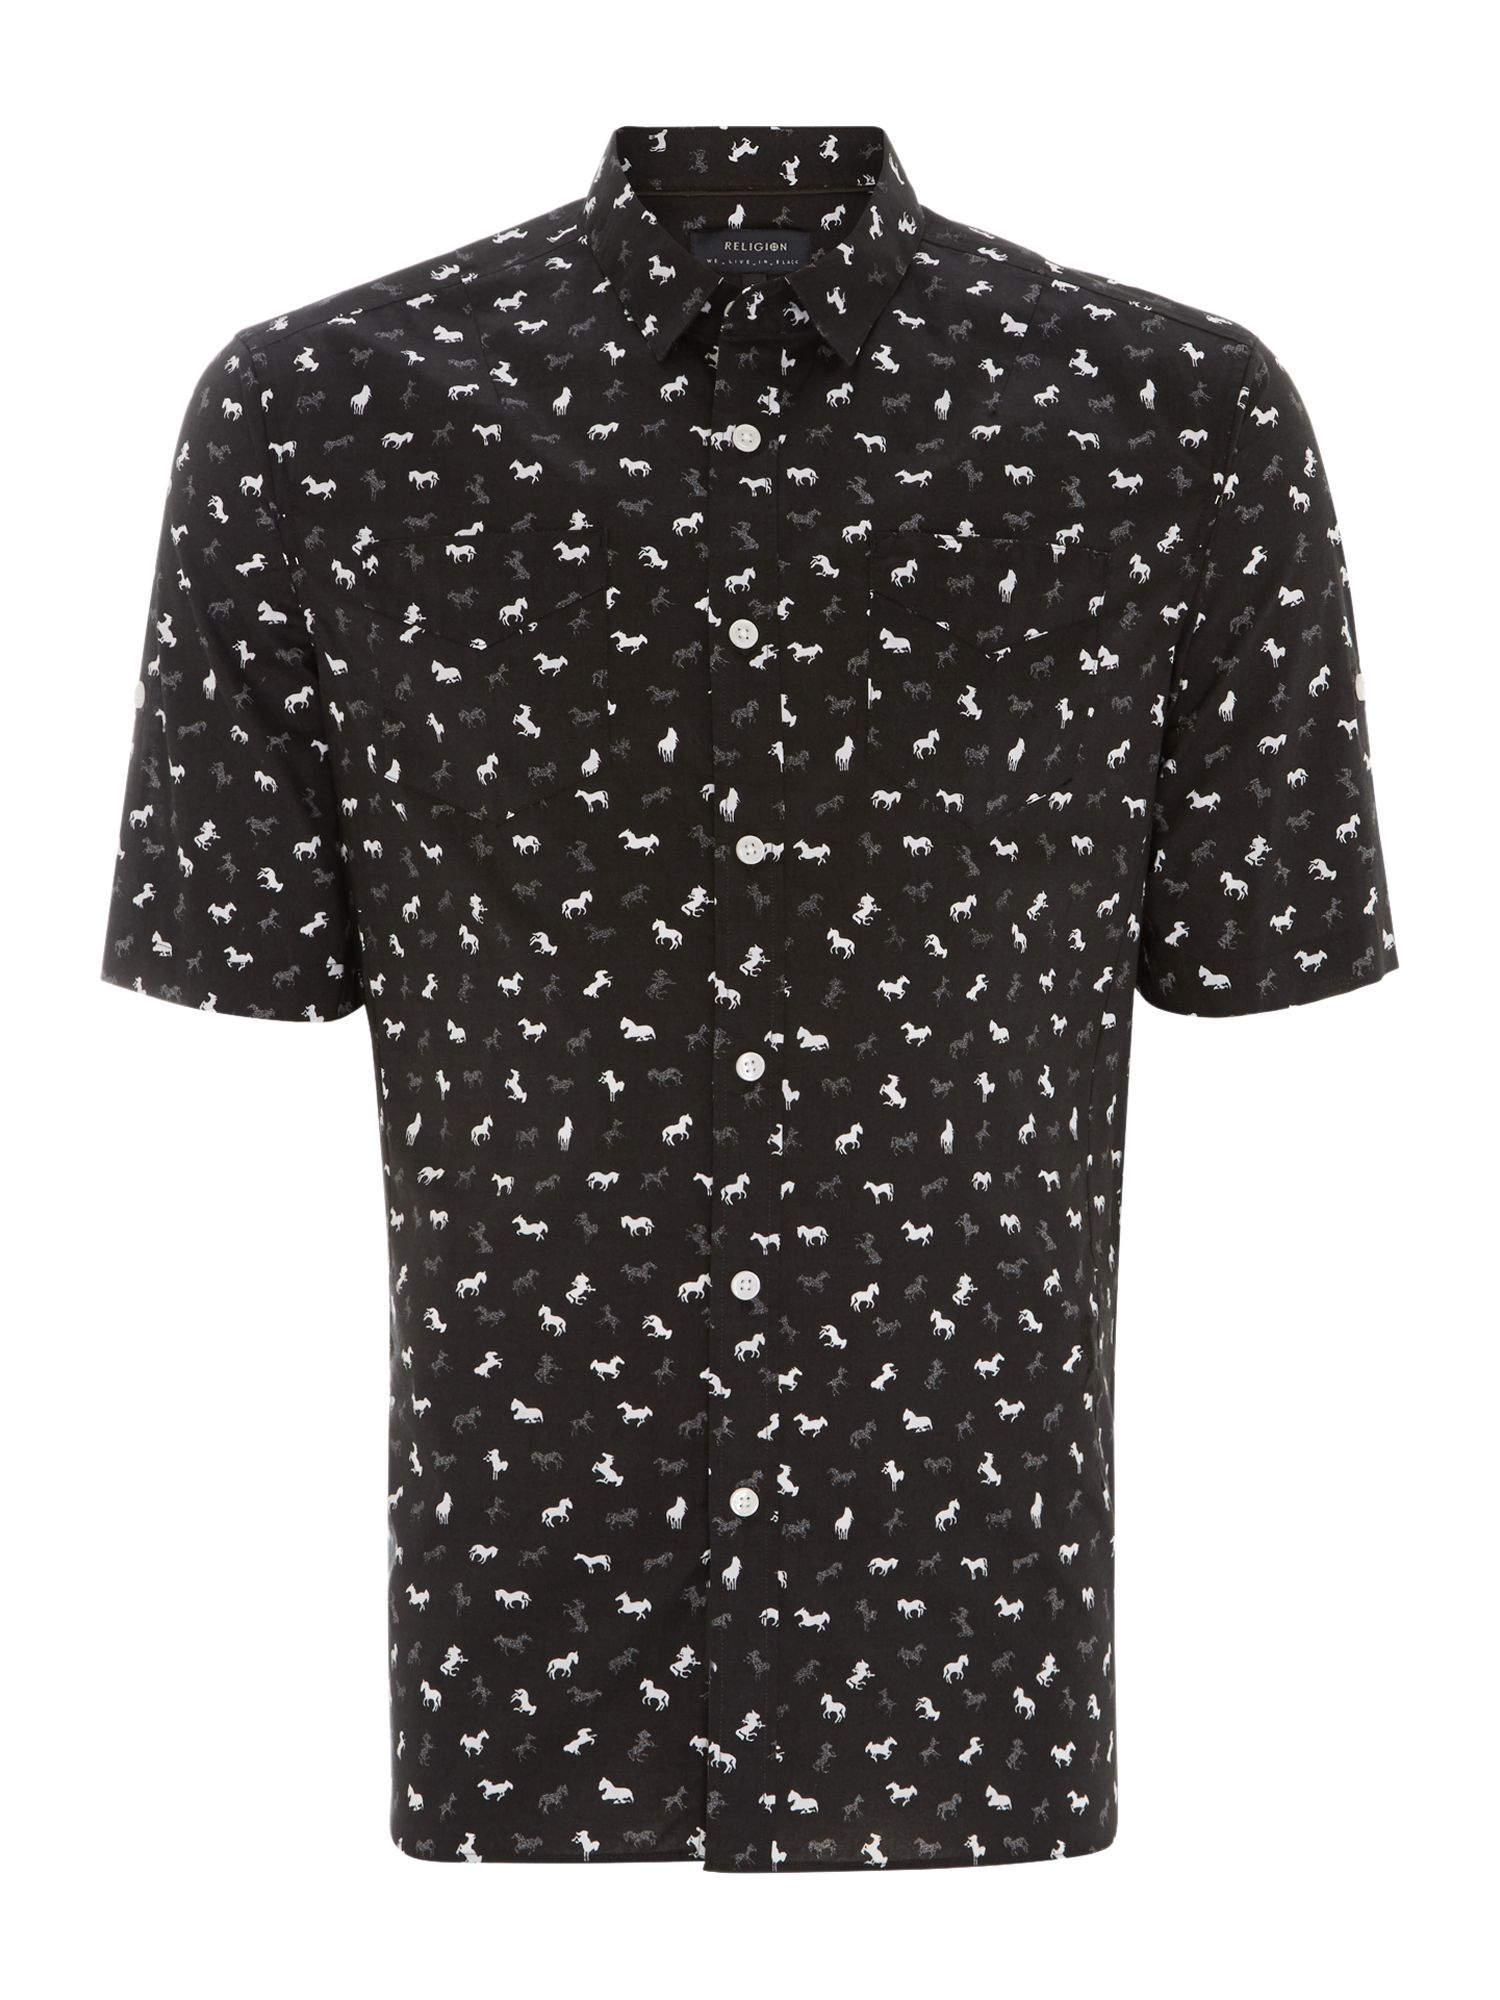 All over horse print short sleeve shirt